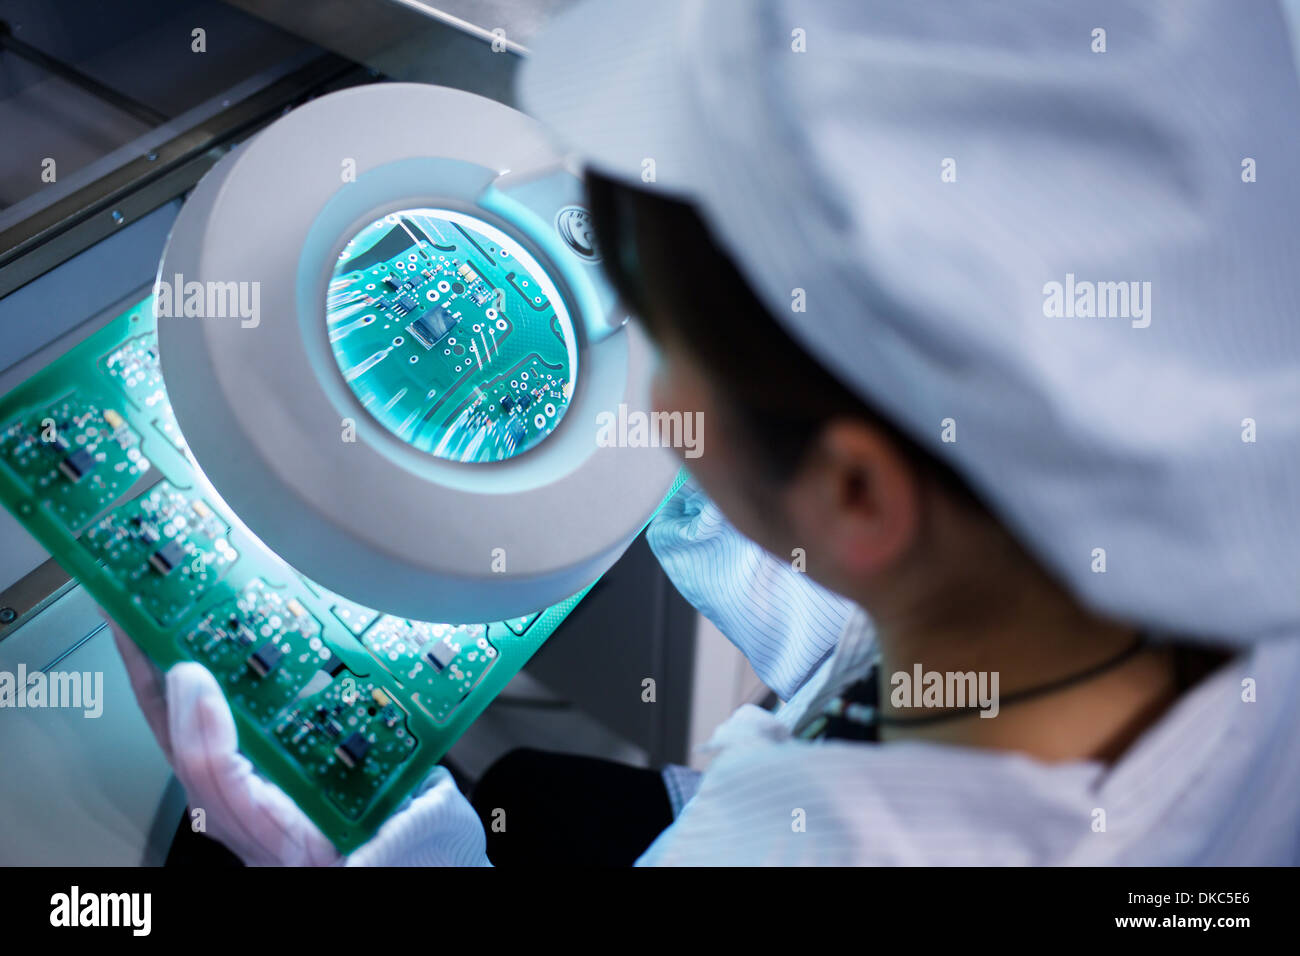 Worker at small parts manufacturing factory in China looking through magnifier at microchips Stock Photo